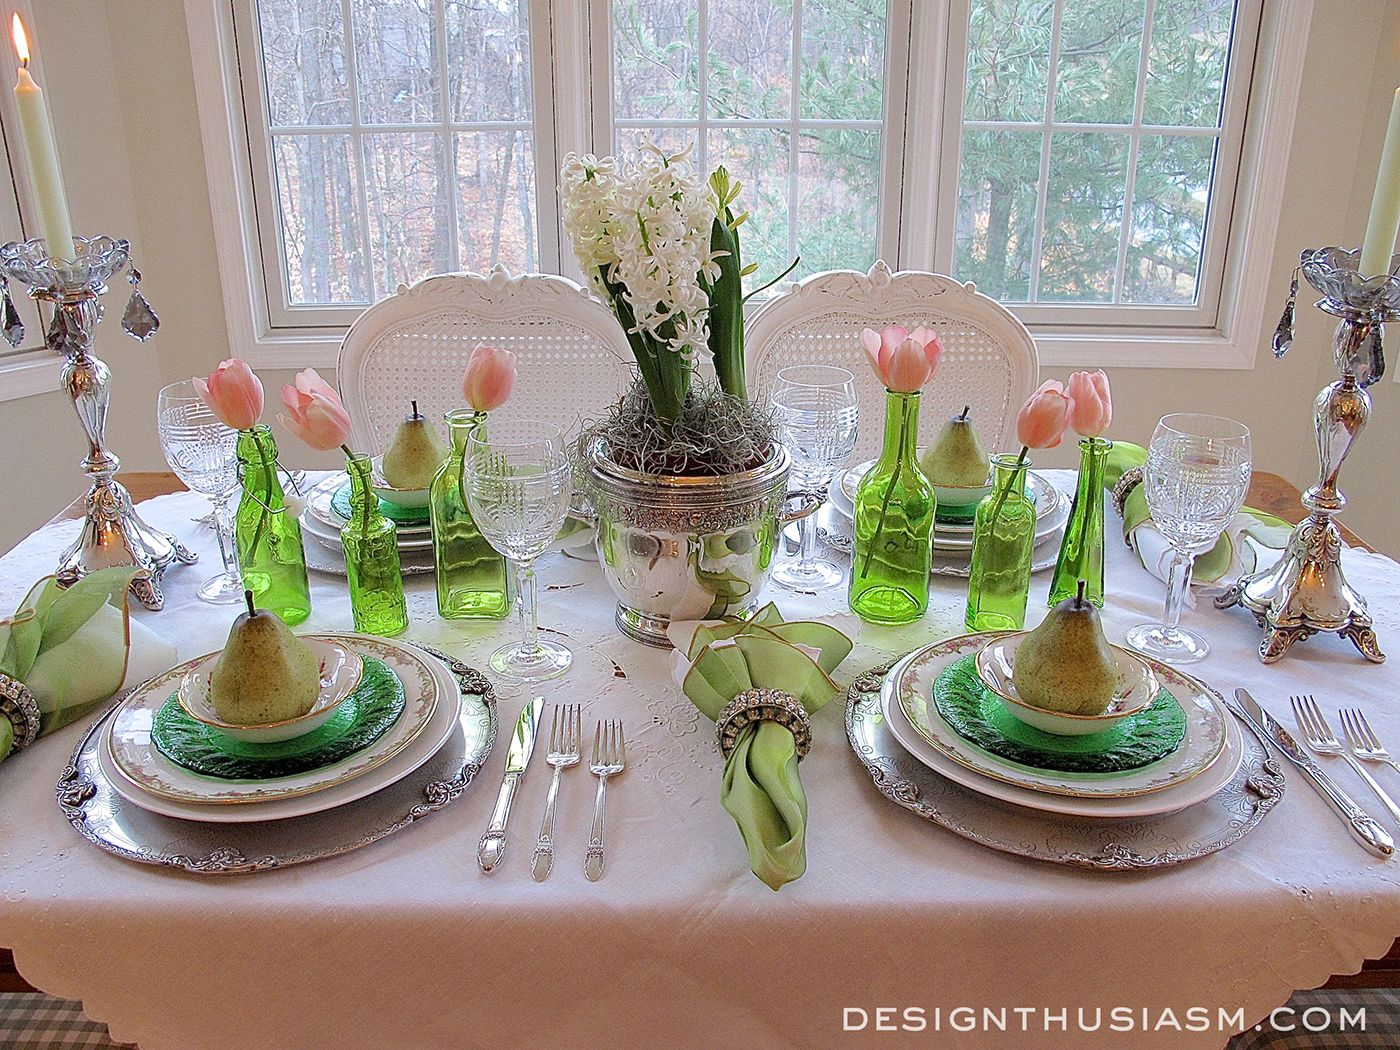 an elegant st. patrick's day tablescape | tablescapes and table